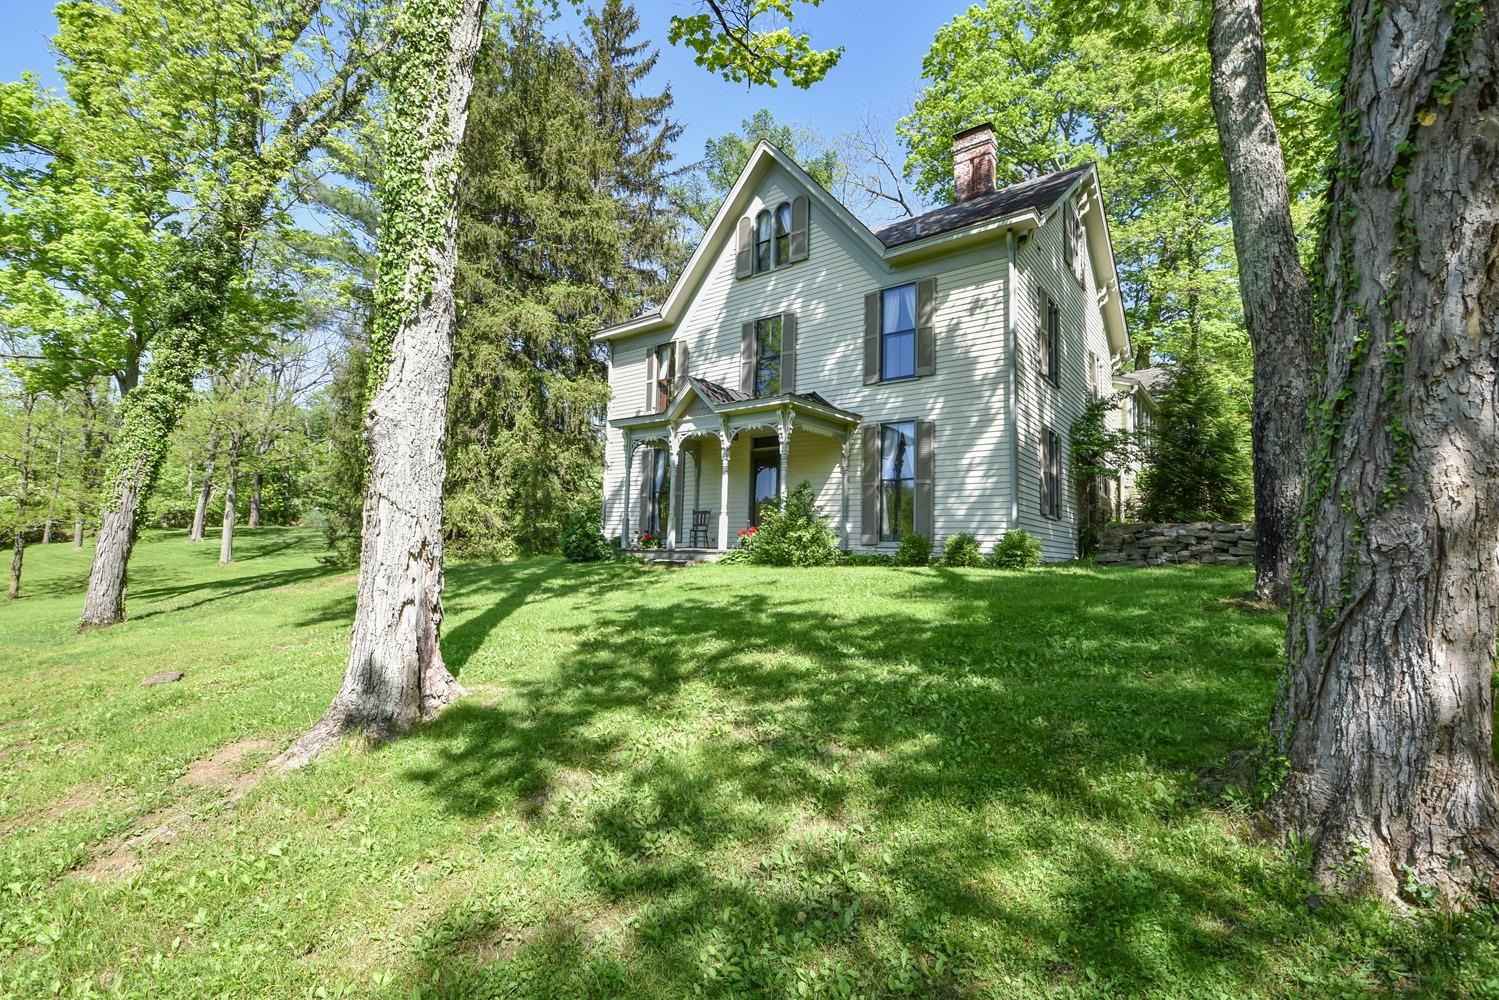 Photo 3 for 8315 Camargo Rd Indian Hill, OH 45243